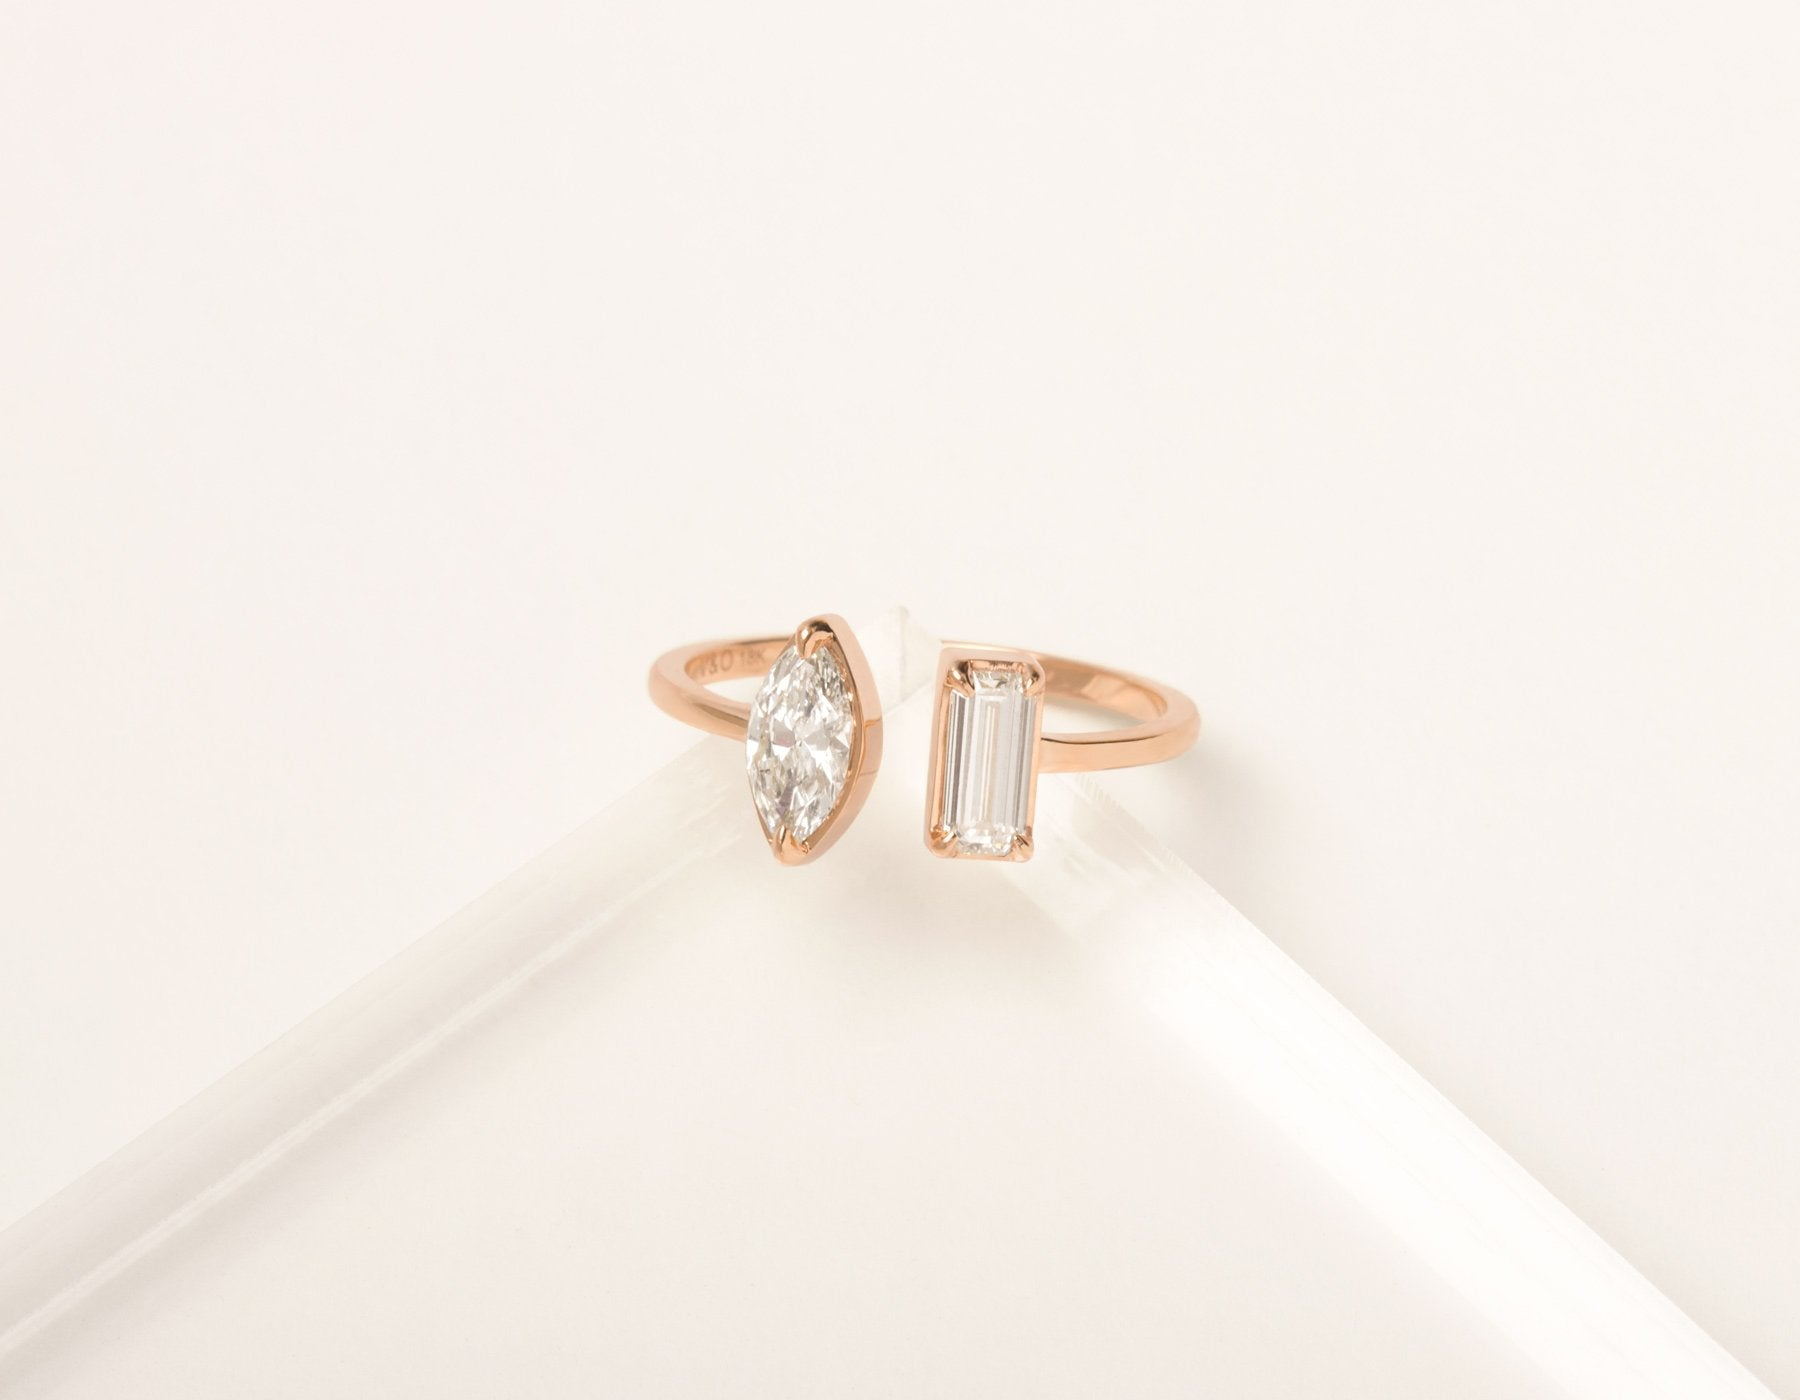 Unique Minimalist 18K solid gold Mix Baguette and Marquise Diamond Cuff Ring Vrai and Oro, 18K Rose Gold